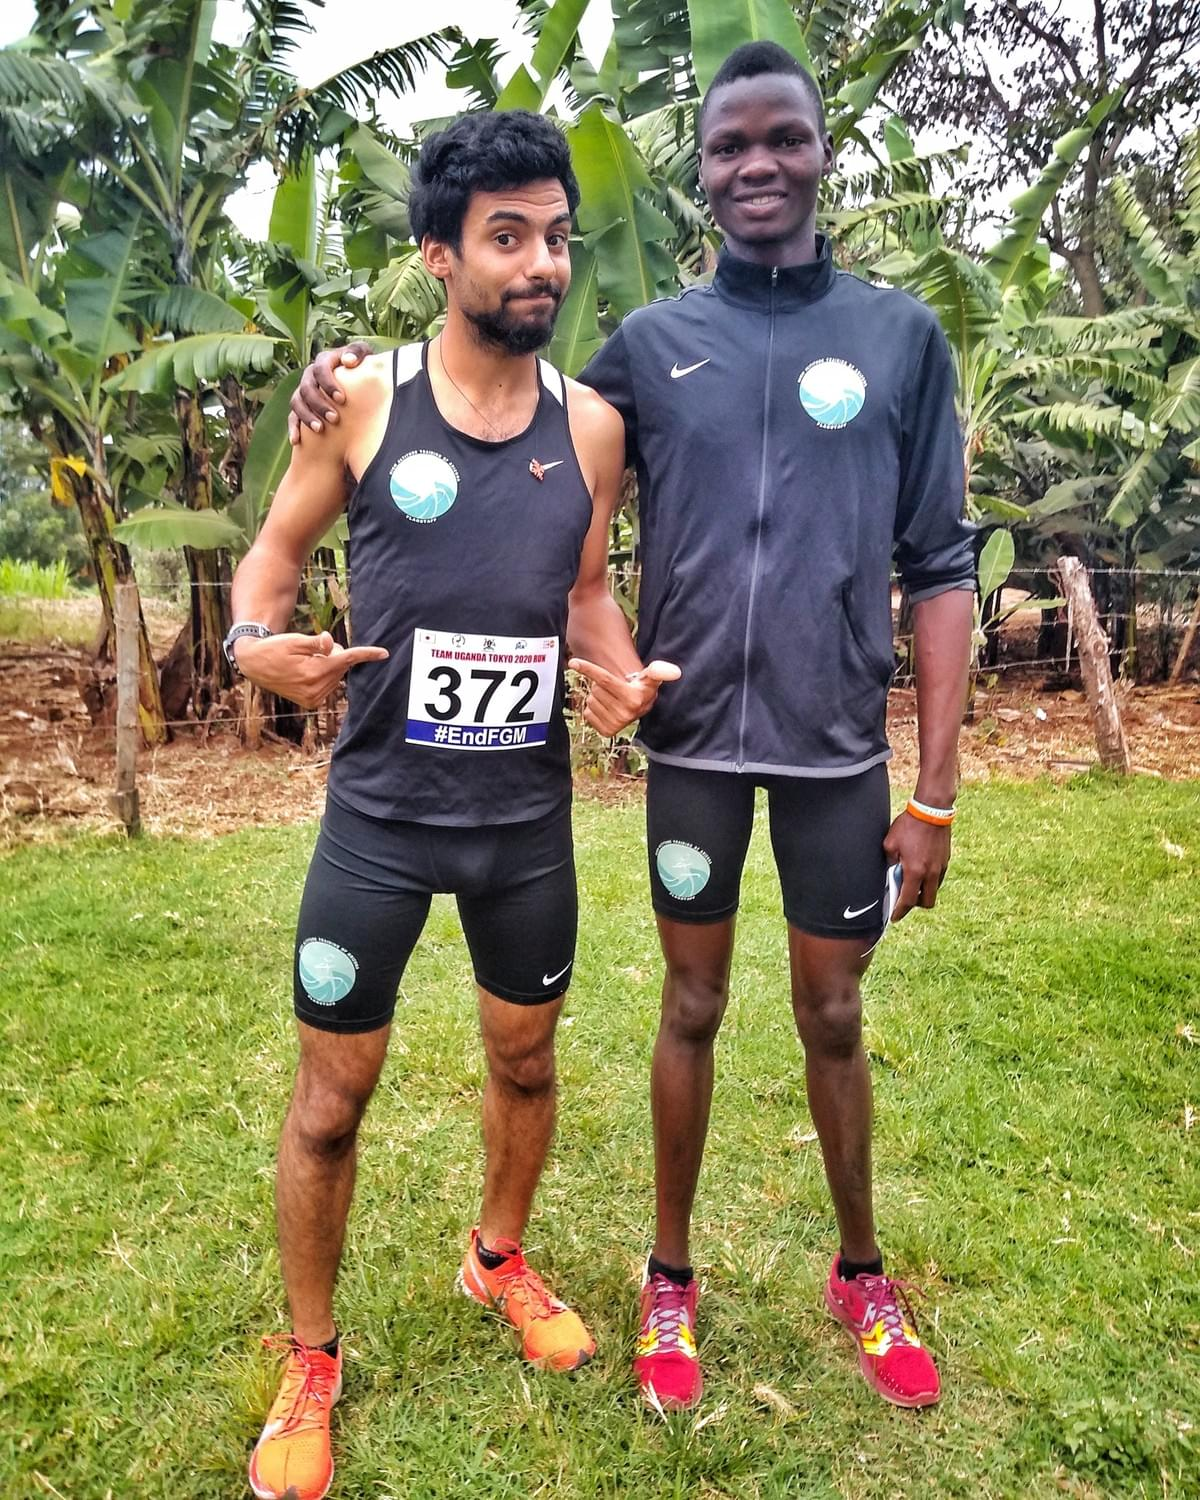 two elite athletes pose for a photo before a race in Kapchorwa, Uganda